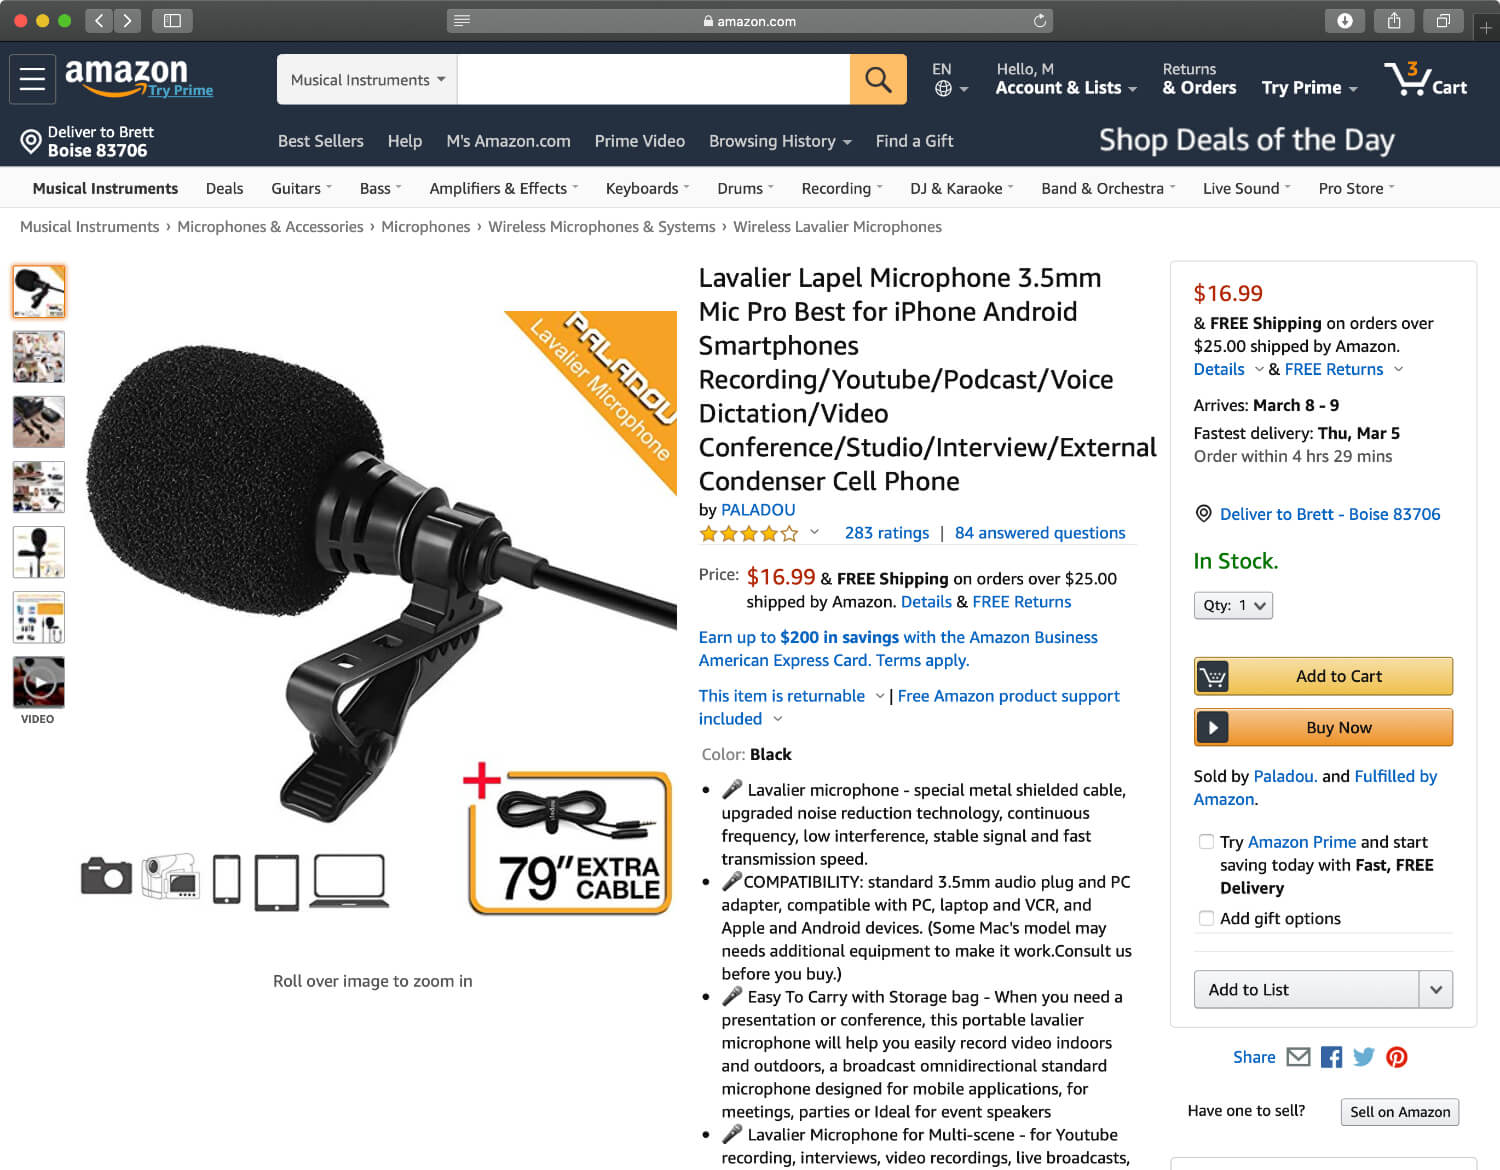 Paladou's lavalier lapel microphone is currently the one of the highest rated affordable microphones on Amazon.